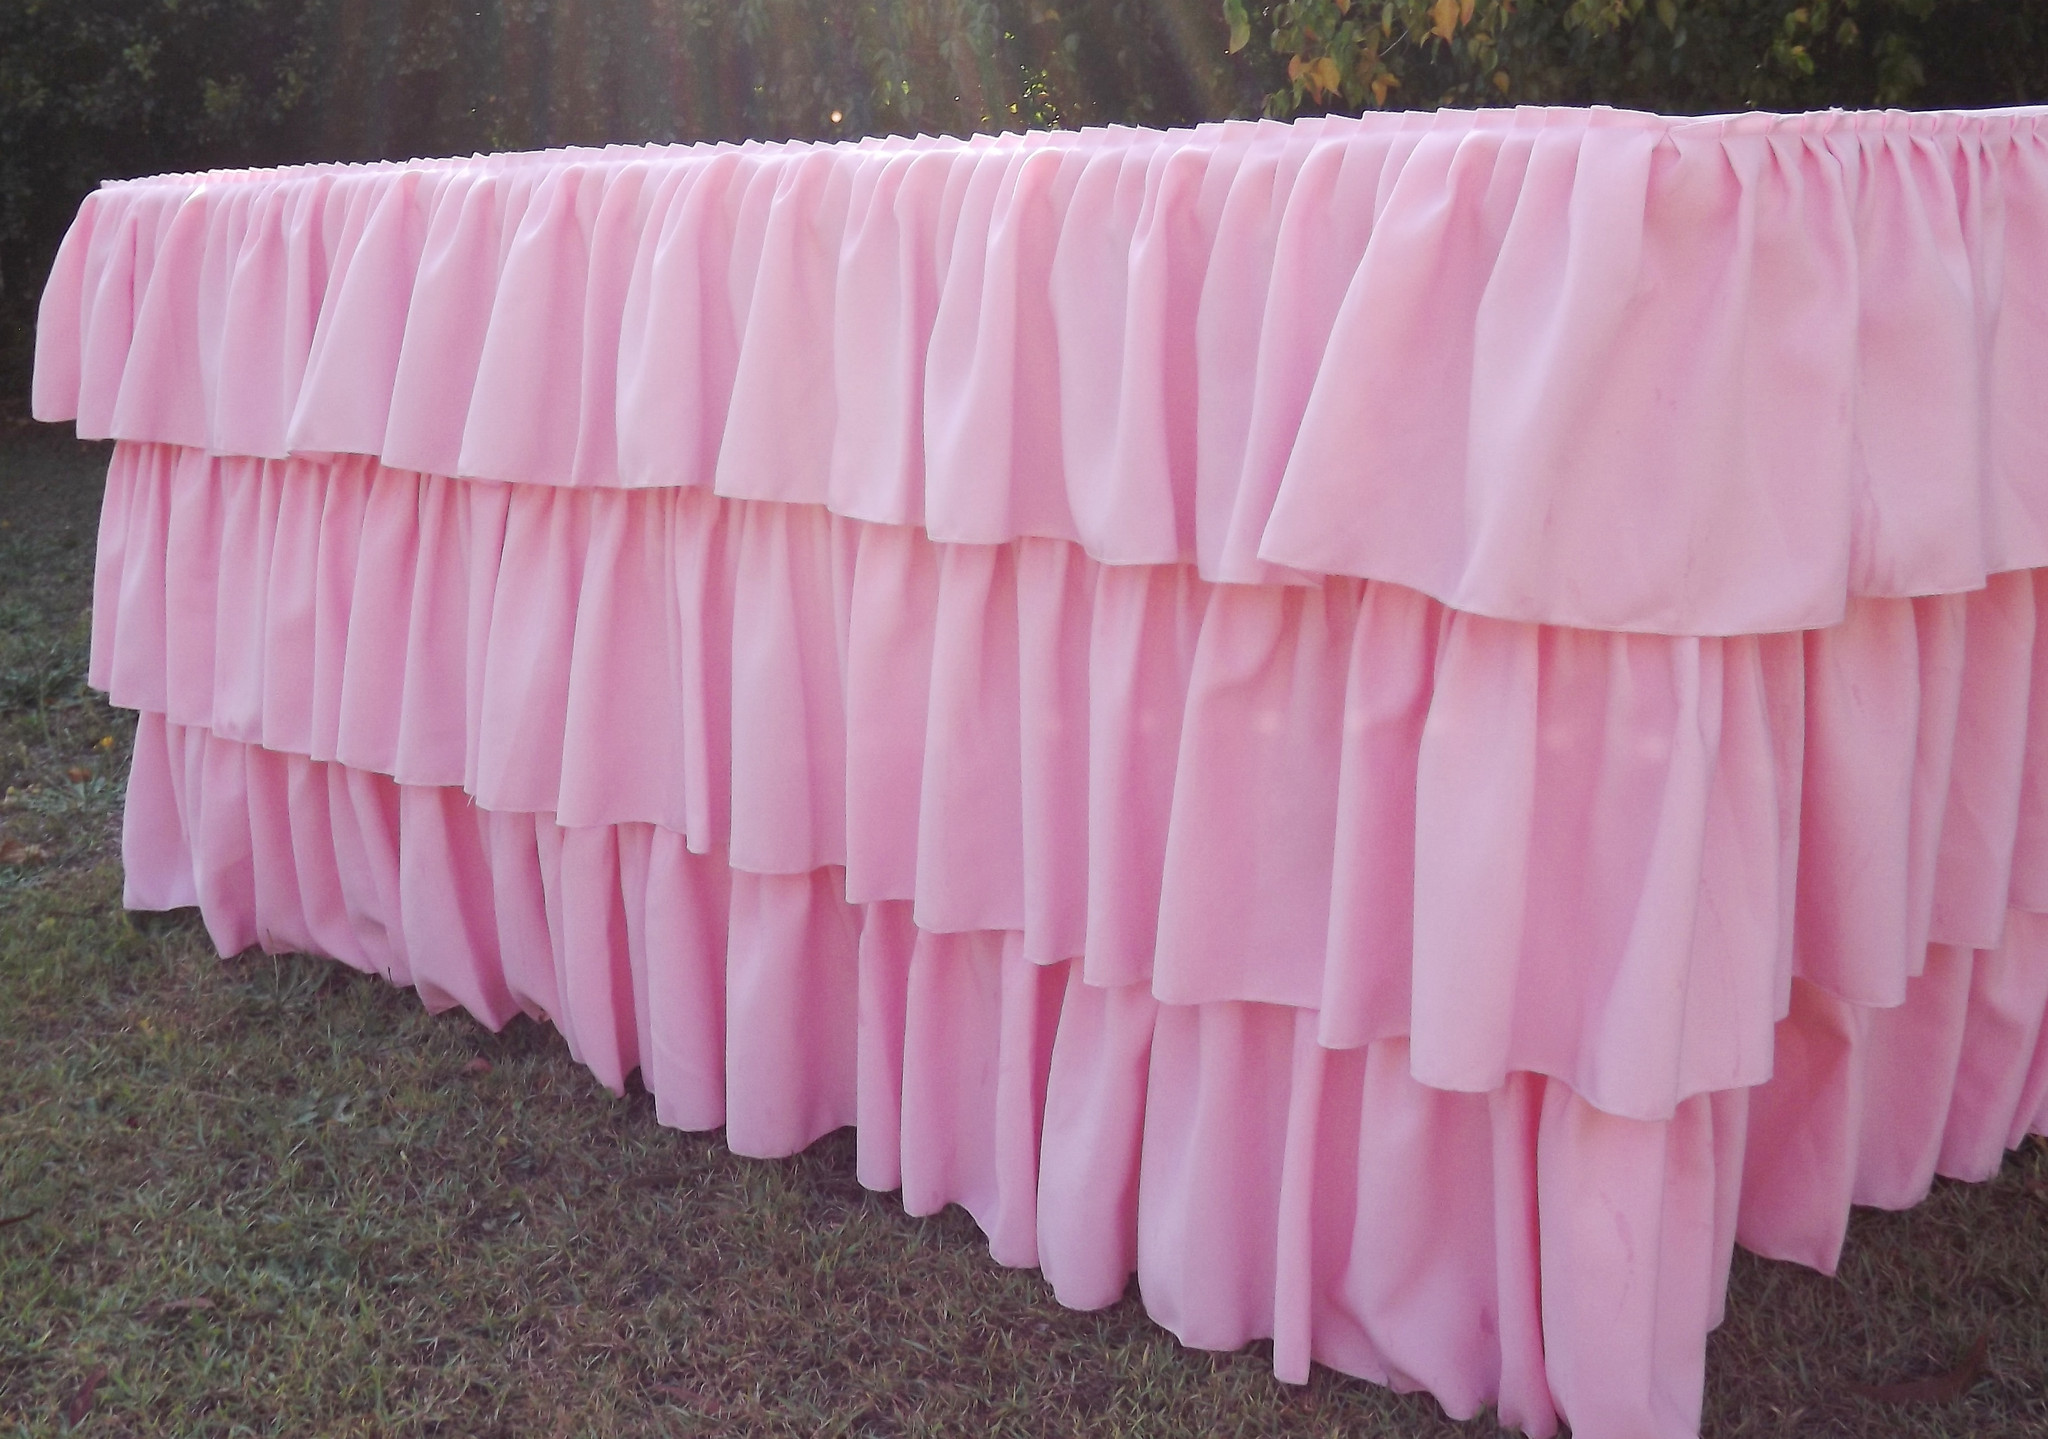 Pink ruffled tablecloth for hire (or purchase) - Saffy and May (Qld)